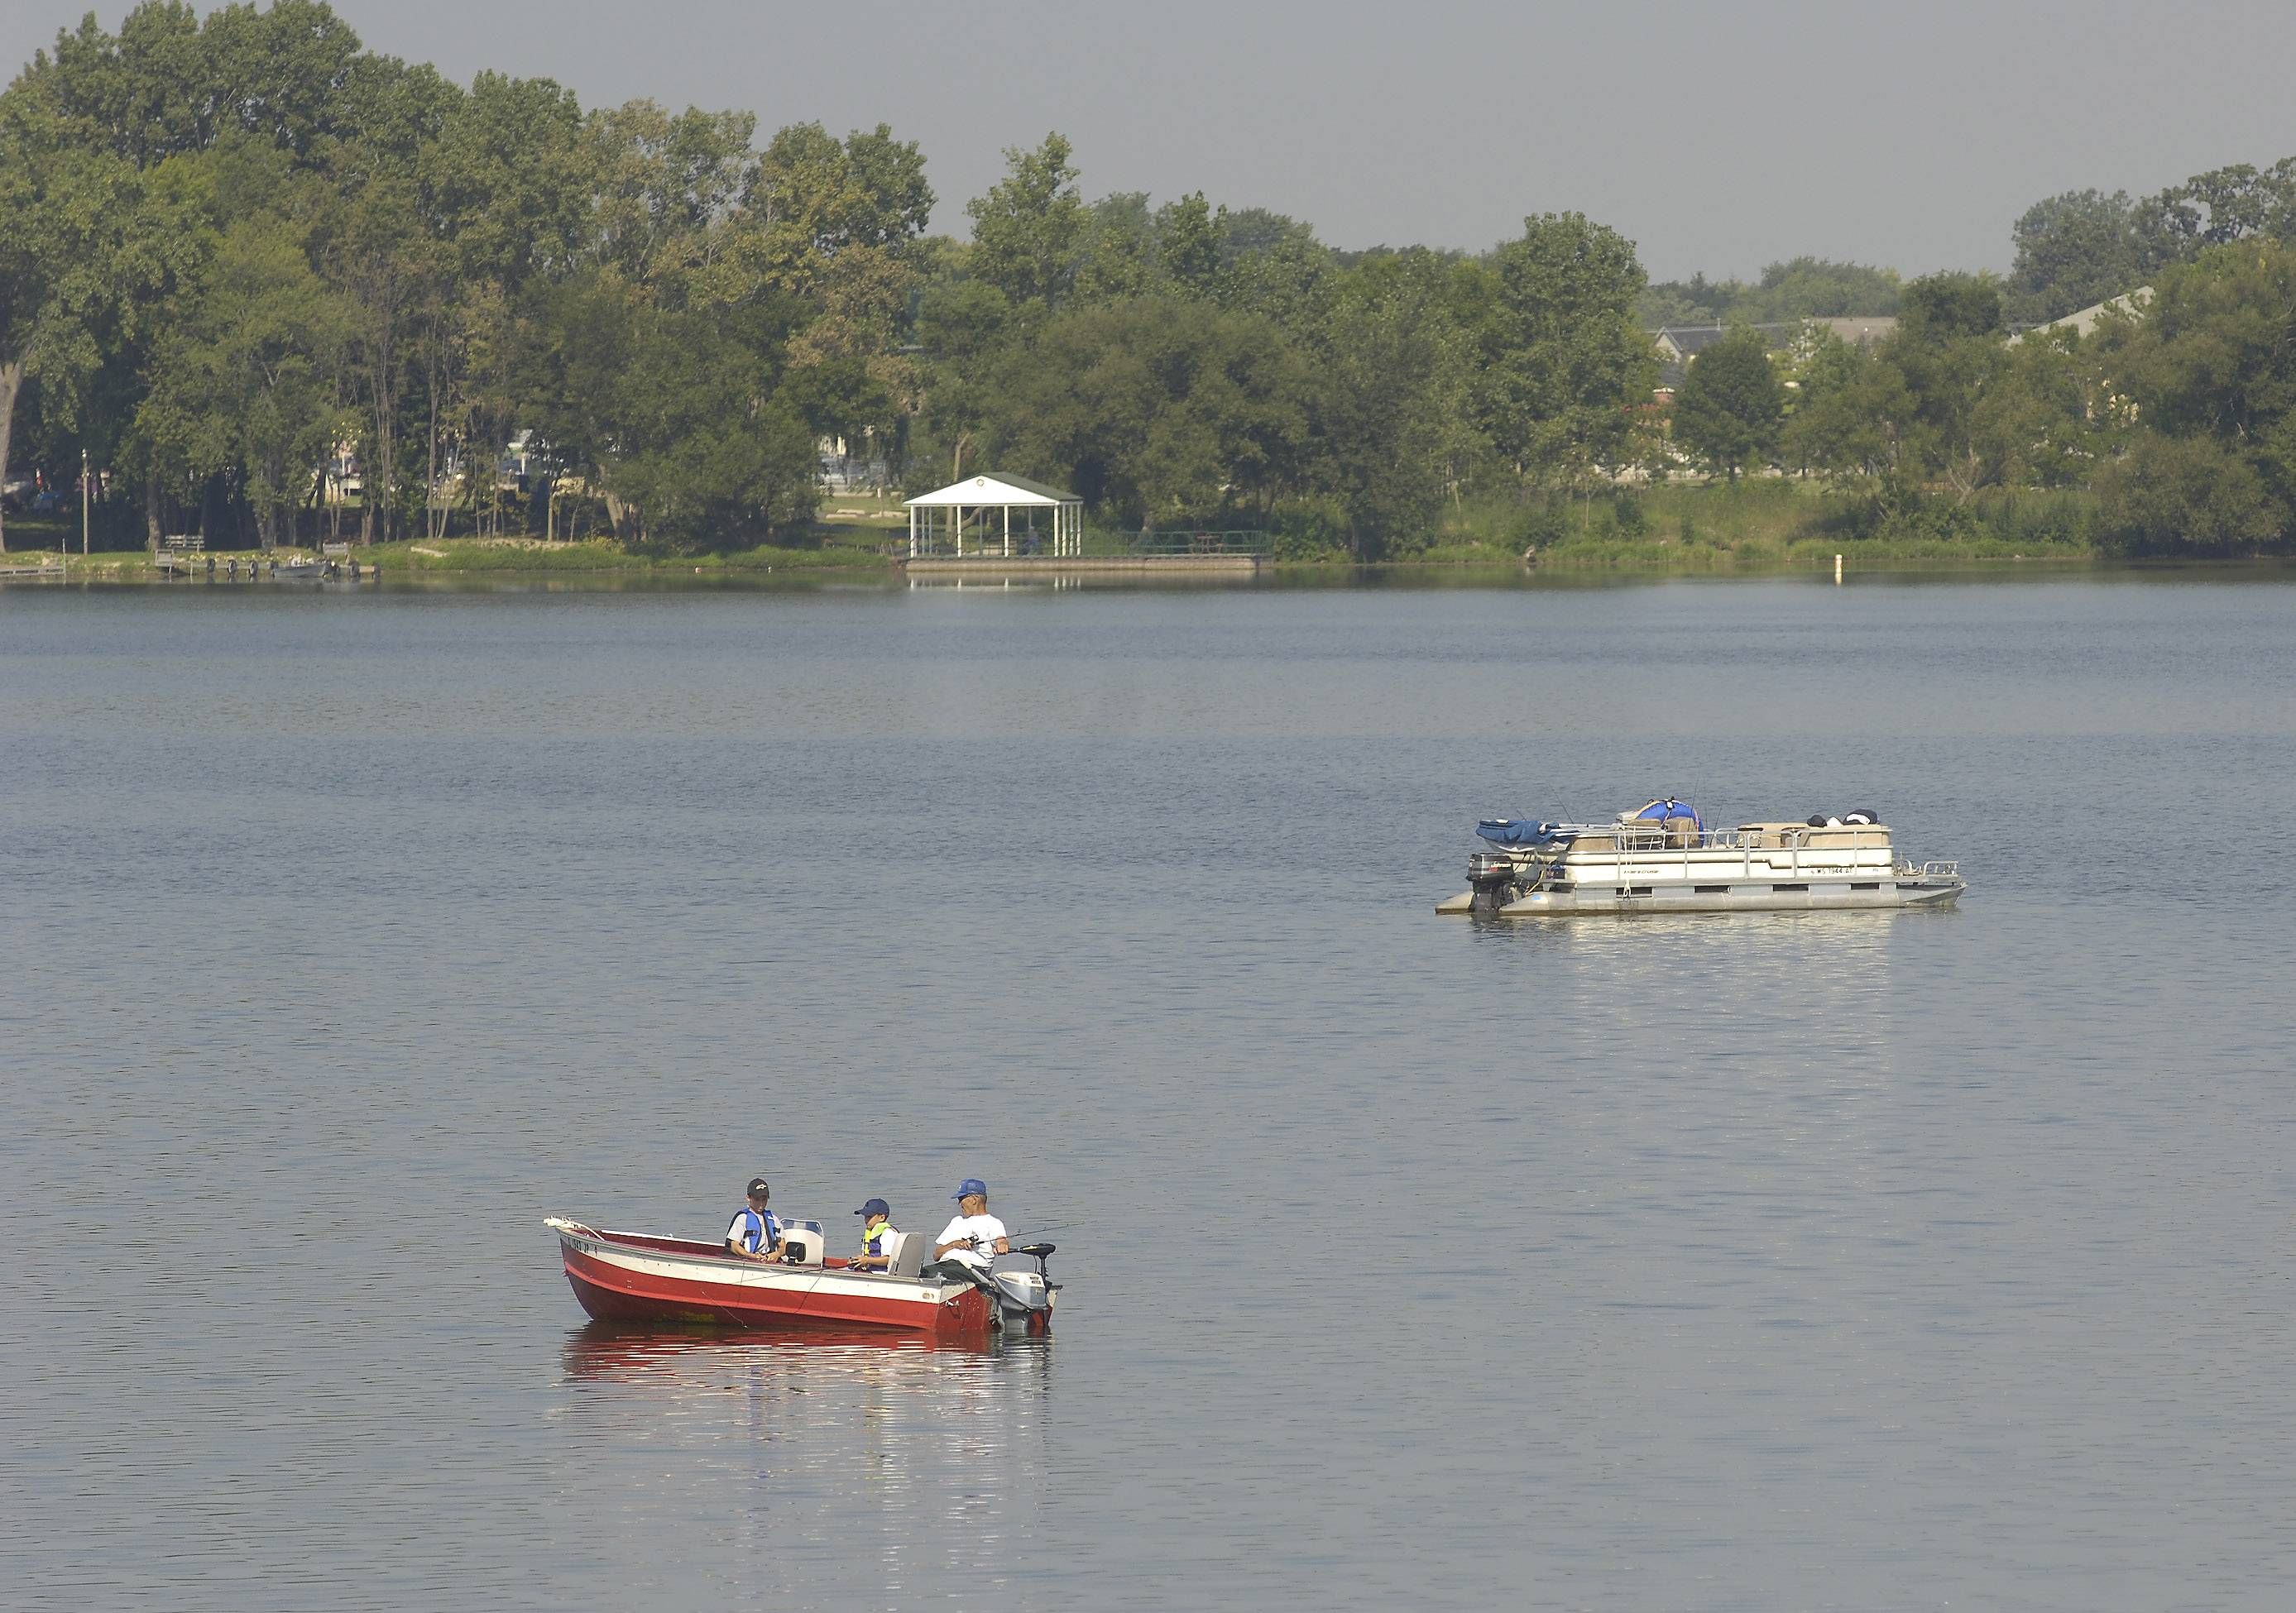 Changes to the no-wake rules on Wauconda's Bangs Lake have been proposed.